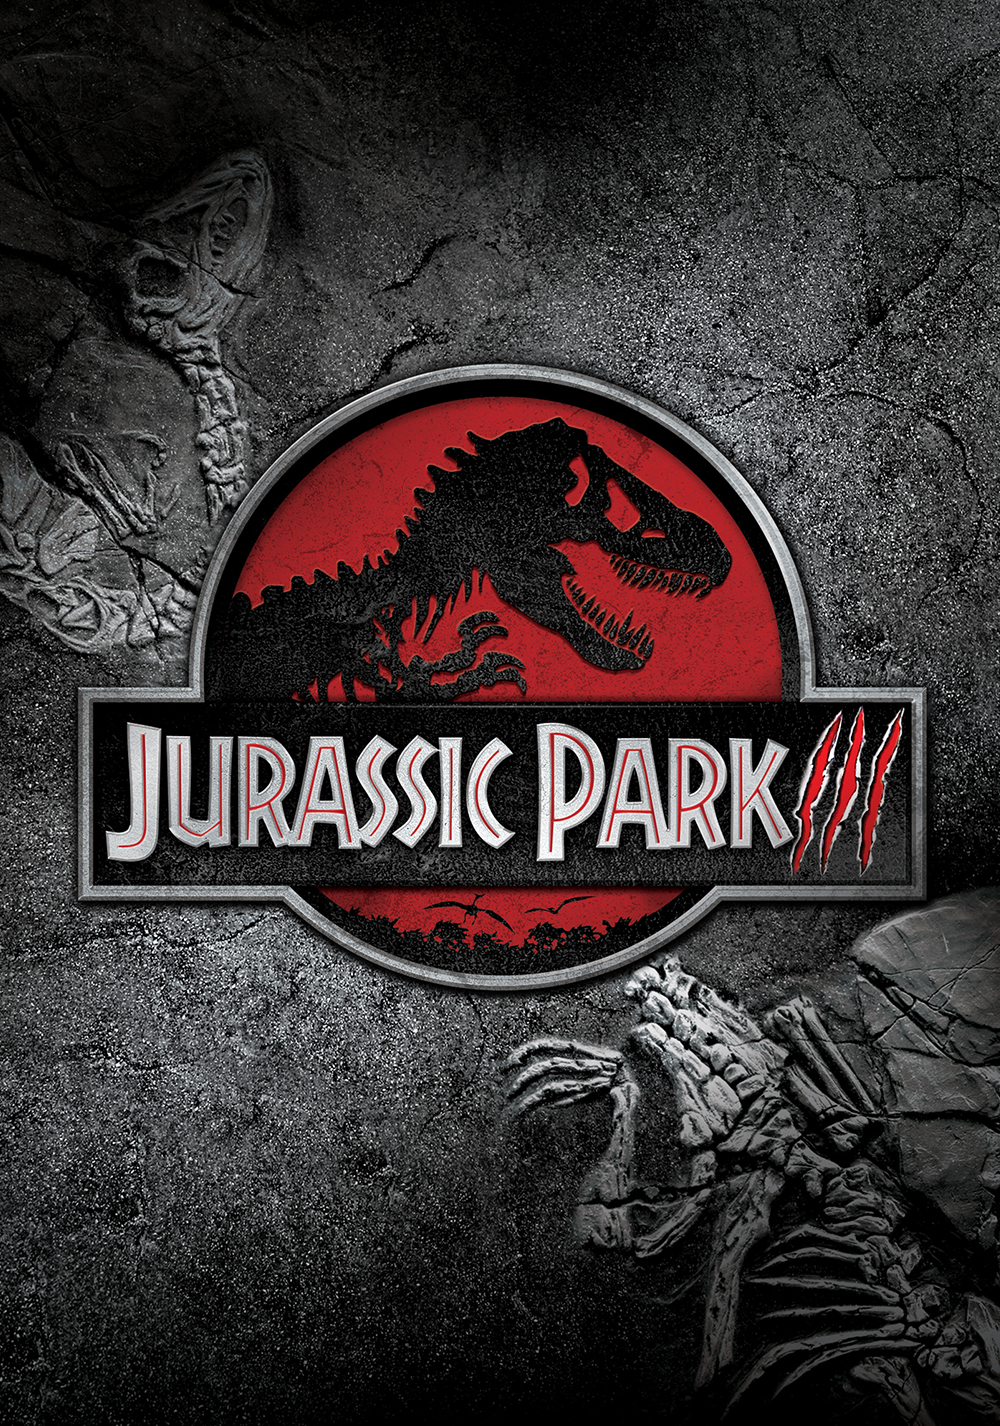 To acquire Park Jurassic movie poster picture trends